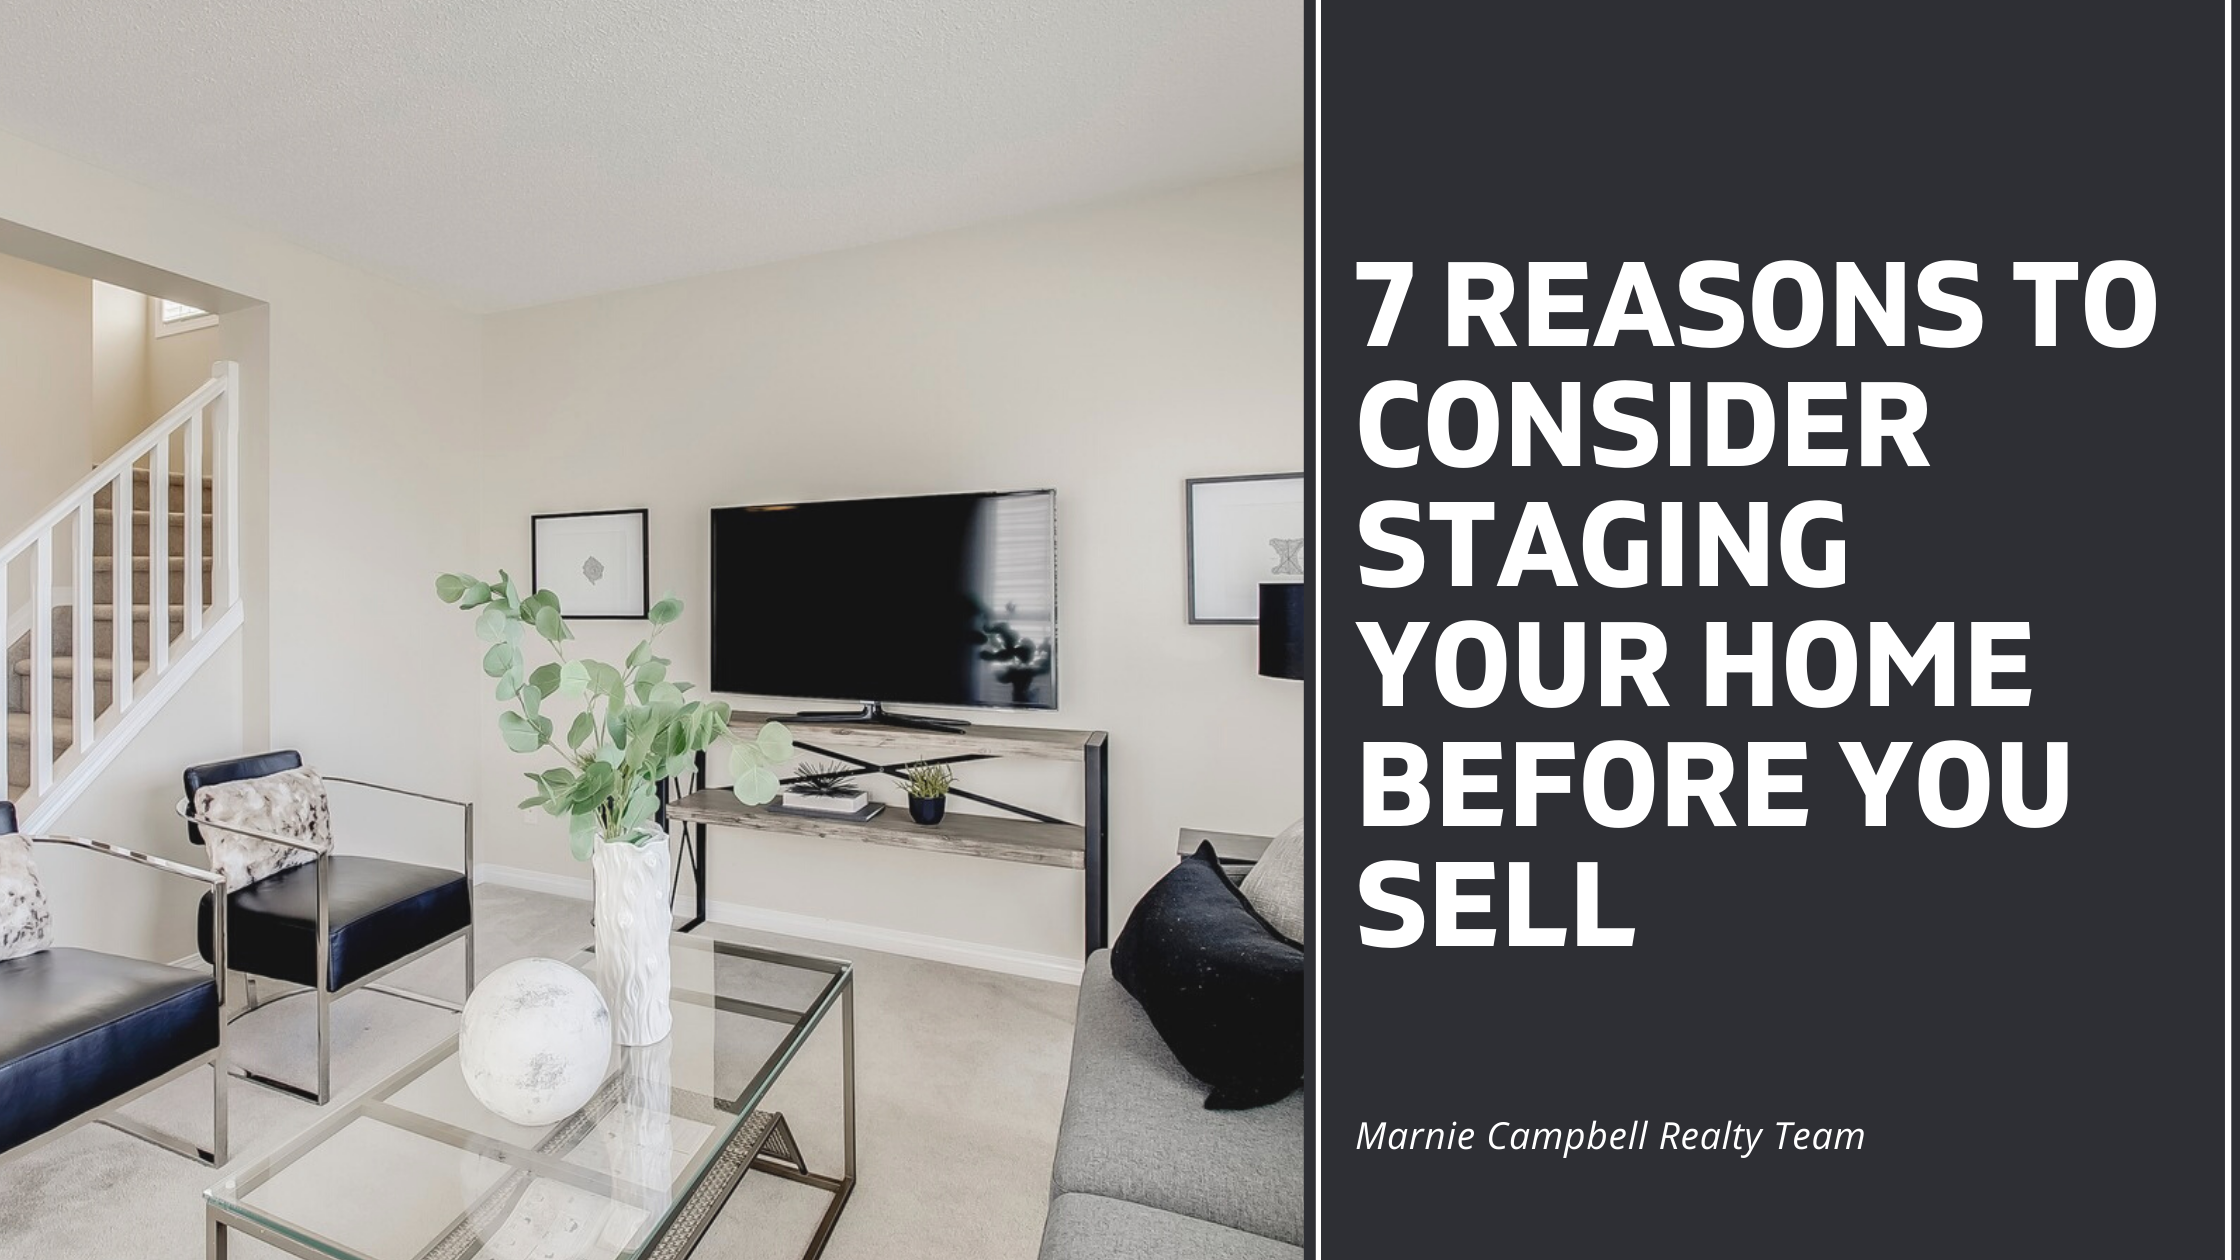 7 Reasons to Consider Staging Your Home Before You Sell